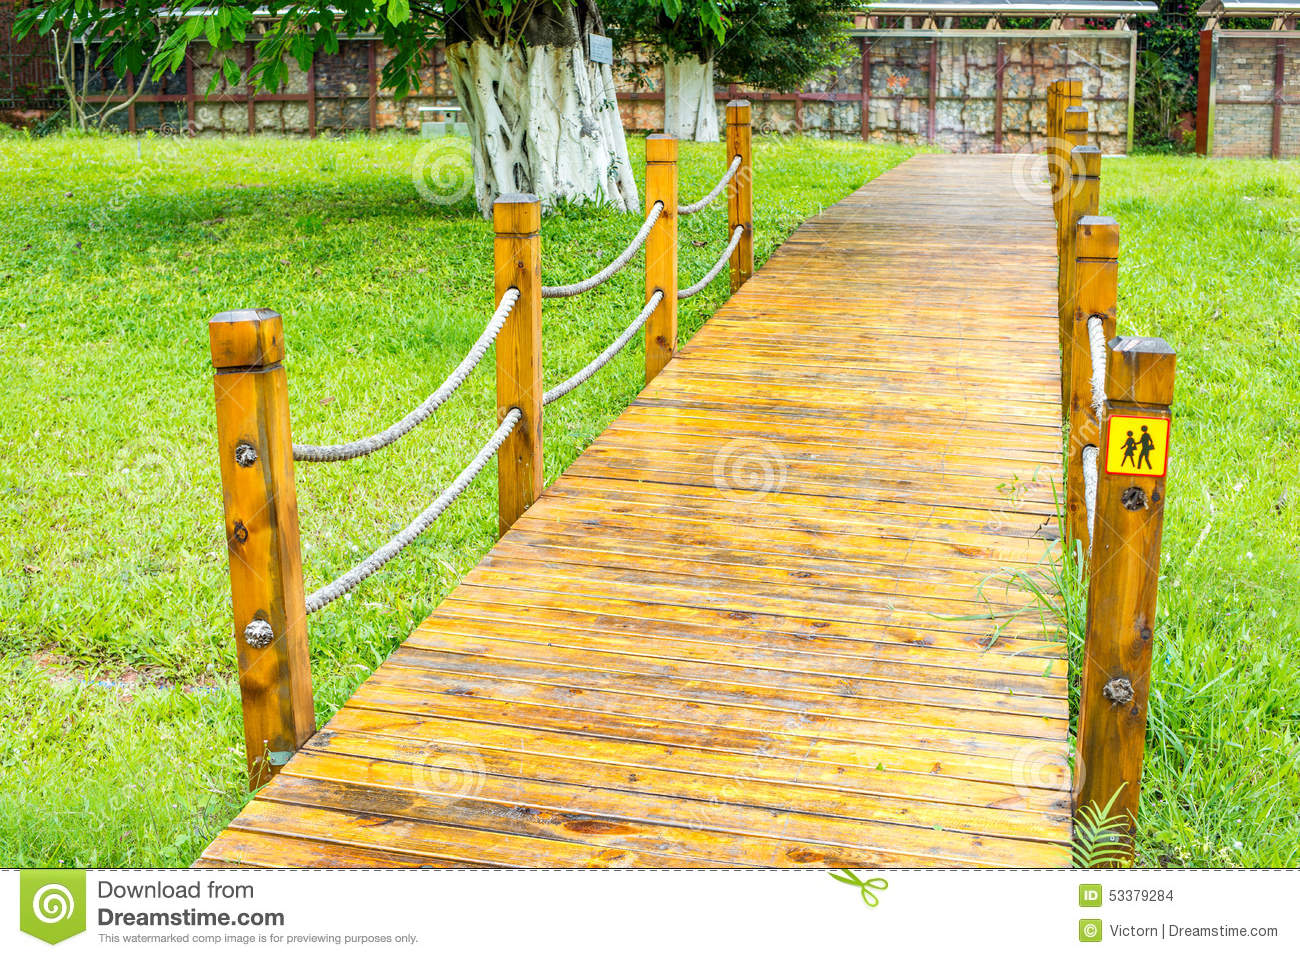 Royalty-Free Stock Photo. Download Wood pathway ...